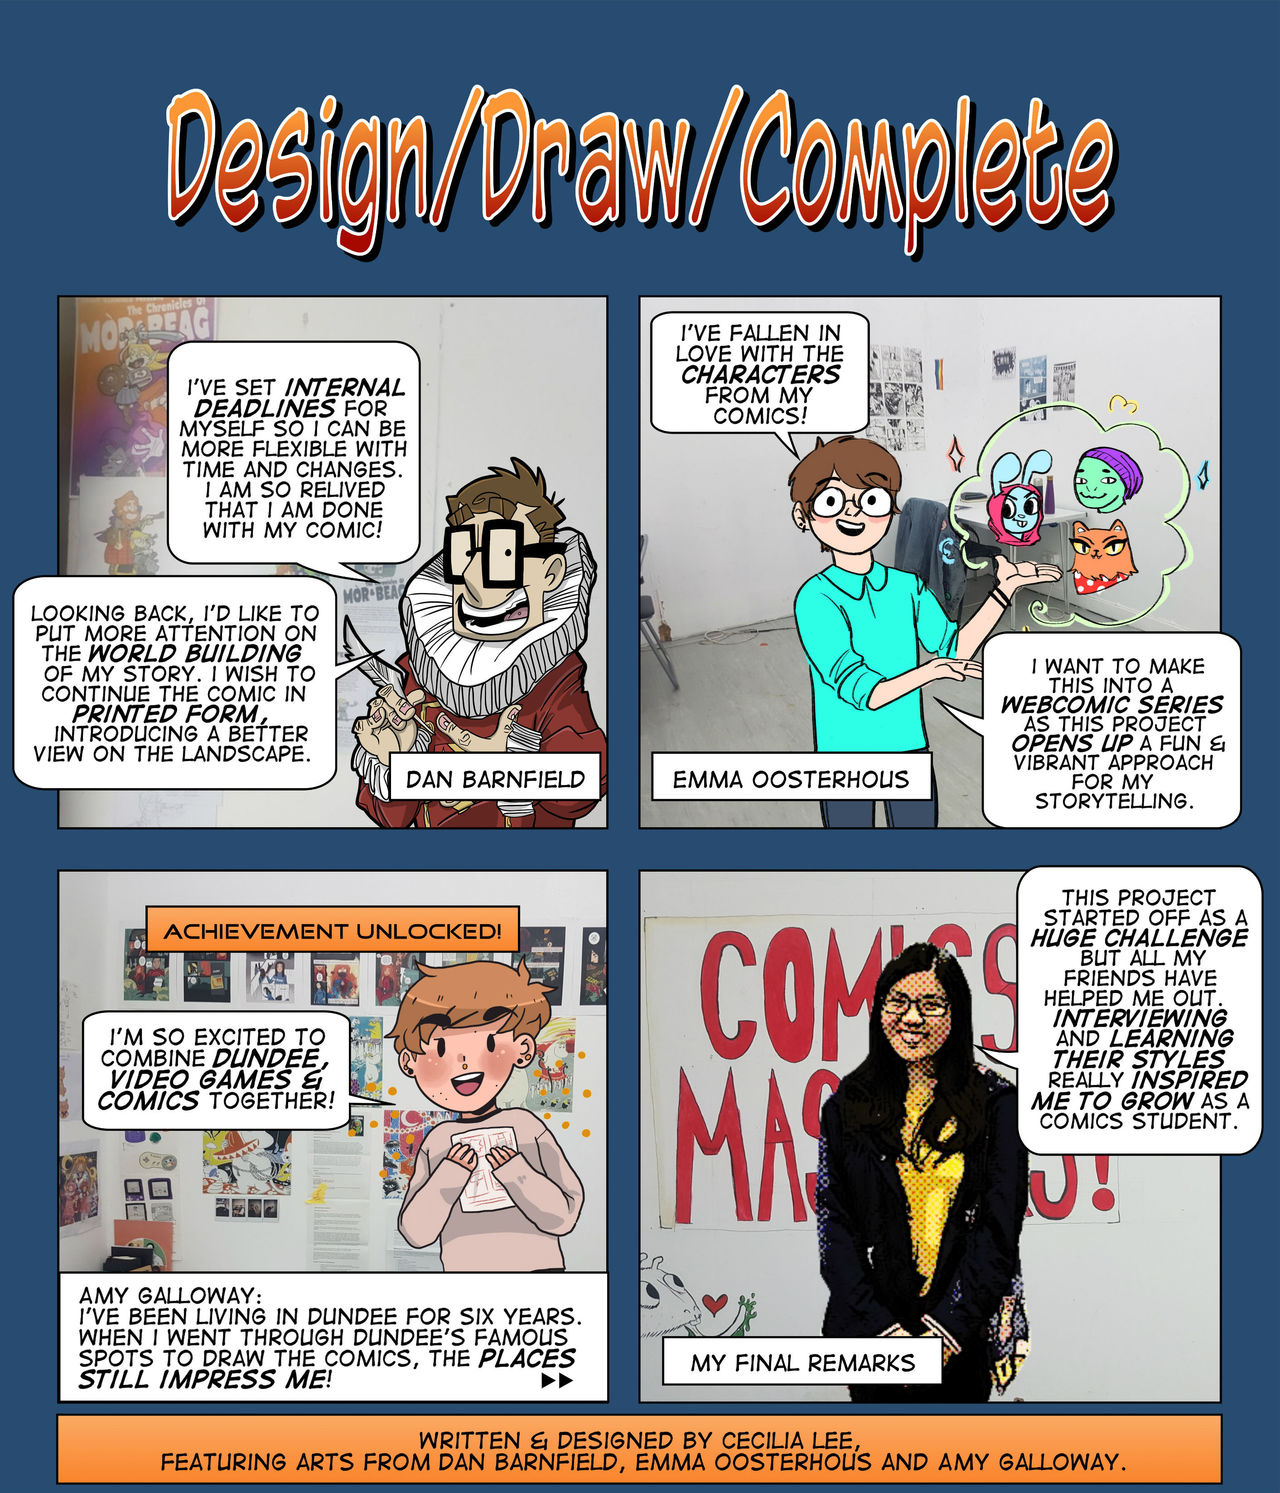 A four-panel comic documenting this webcomics project. Different students are featured in each panel reflecting on the whole webcomics process. Danny says he learned to set himself deadlines and that he's excited to explore his story further beyond this project. Similarly, Emma fell in love with her characters and wants to create a regular webseries with them. Amy was excited to explore Dundee and learn even more about it as she incorporated landmarks in her story. Finally, Cecilia reflects on her own webcomic and how much she learned from her fellow students and was inspired.